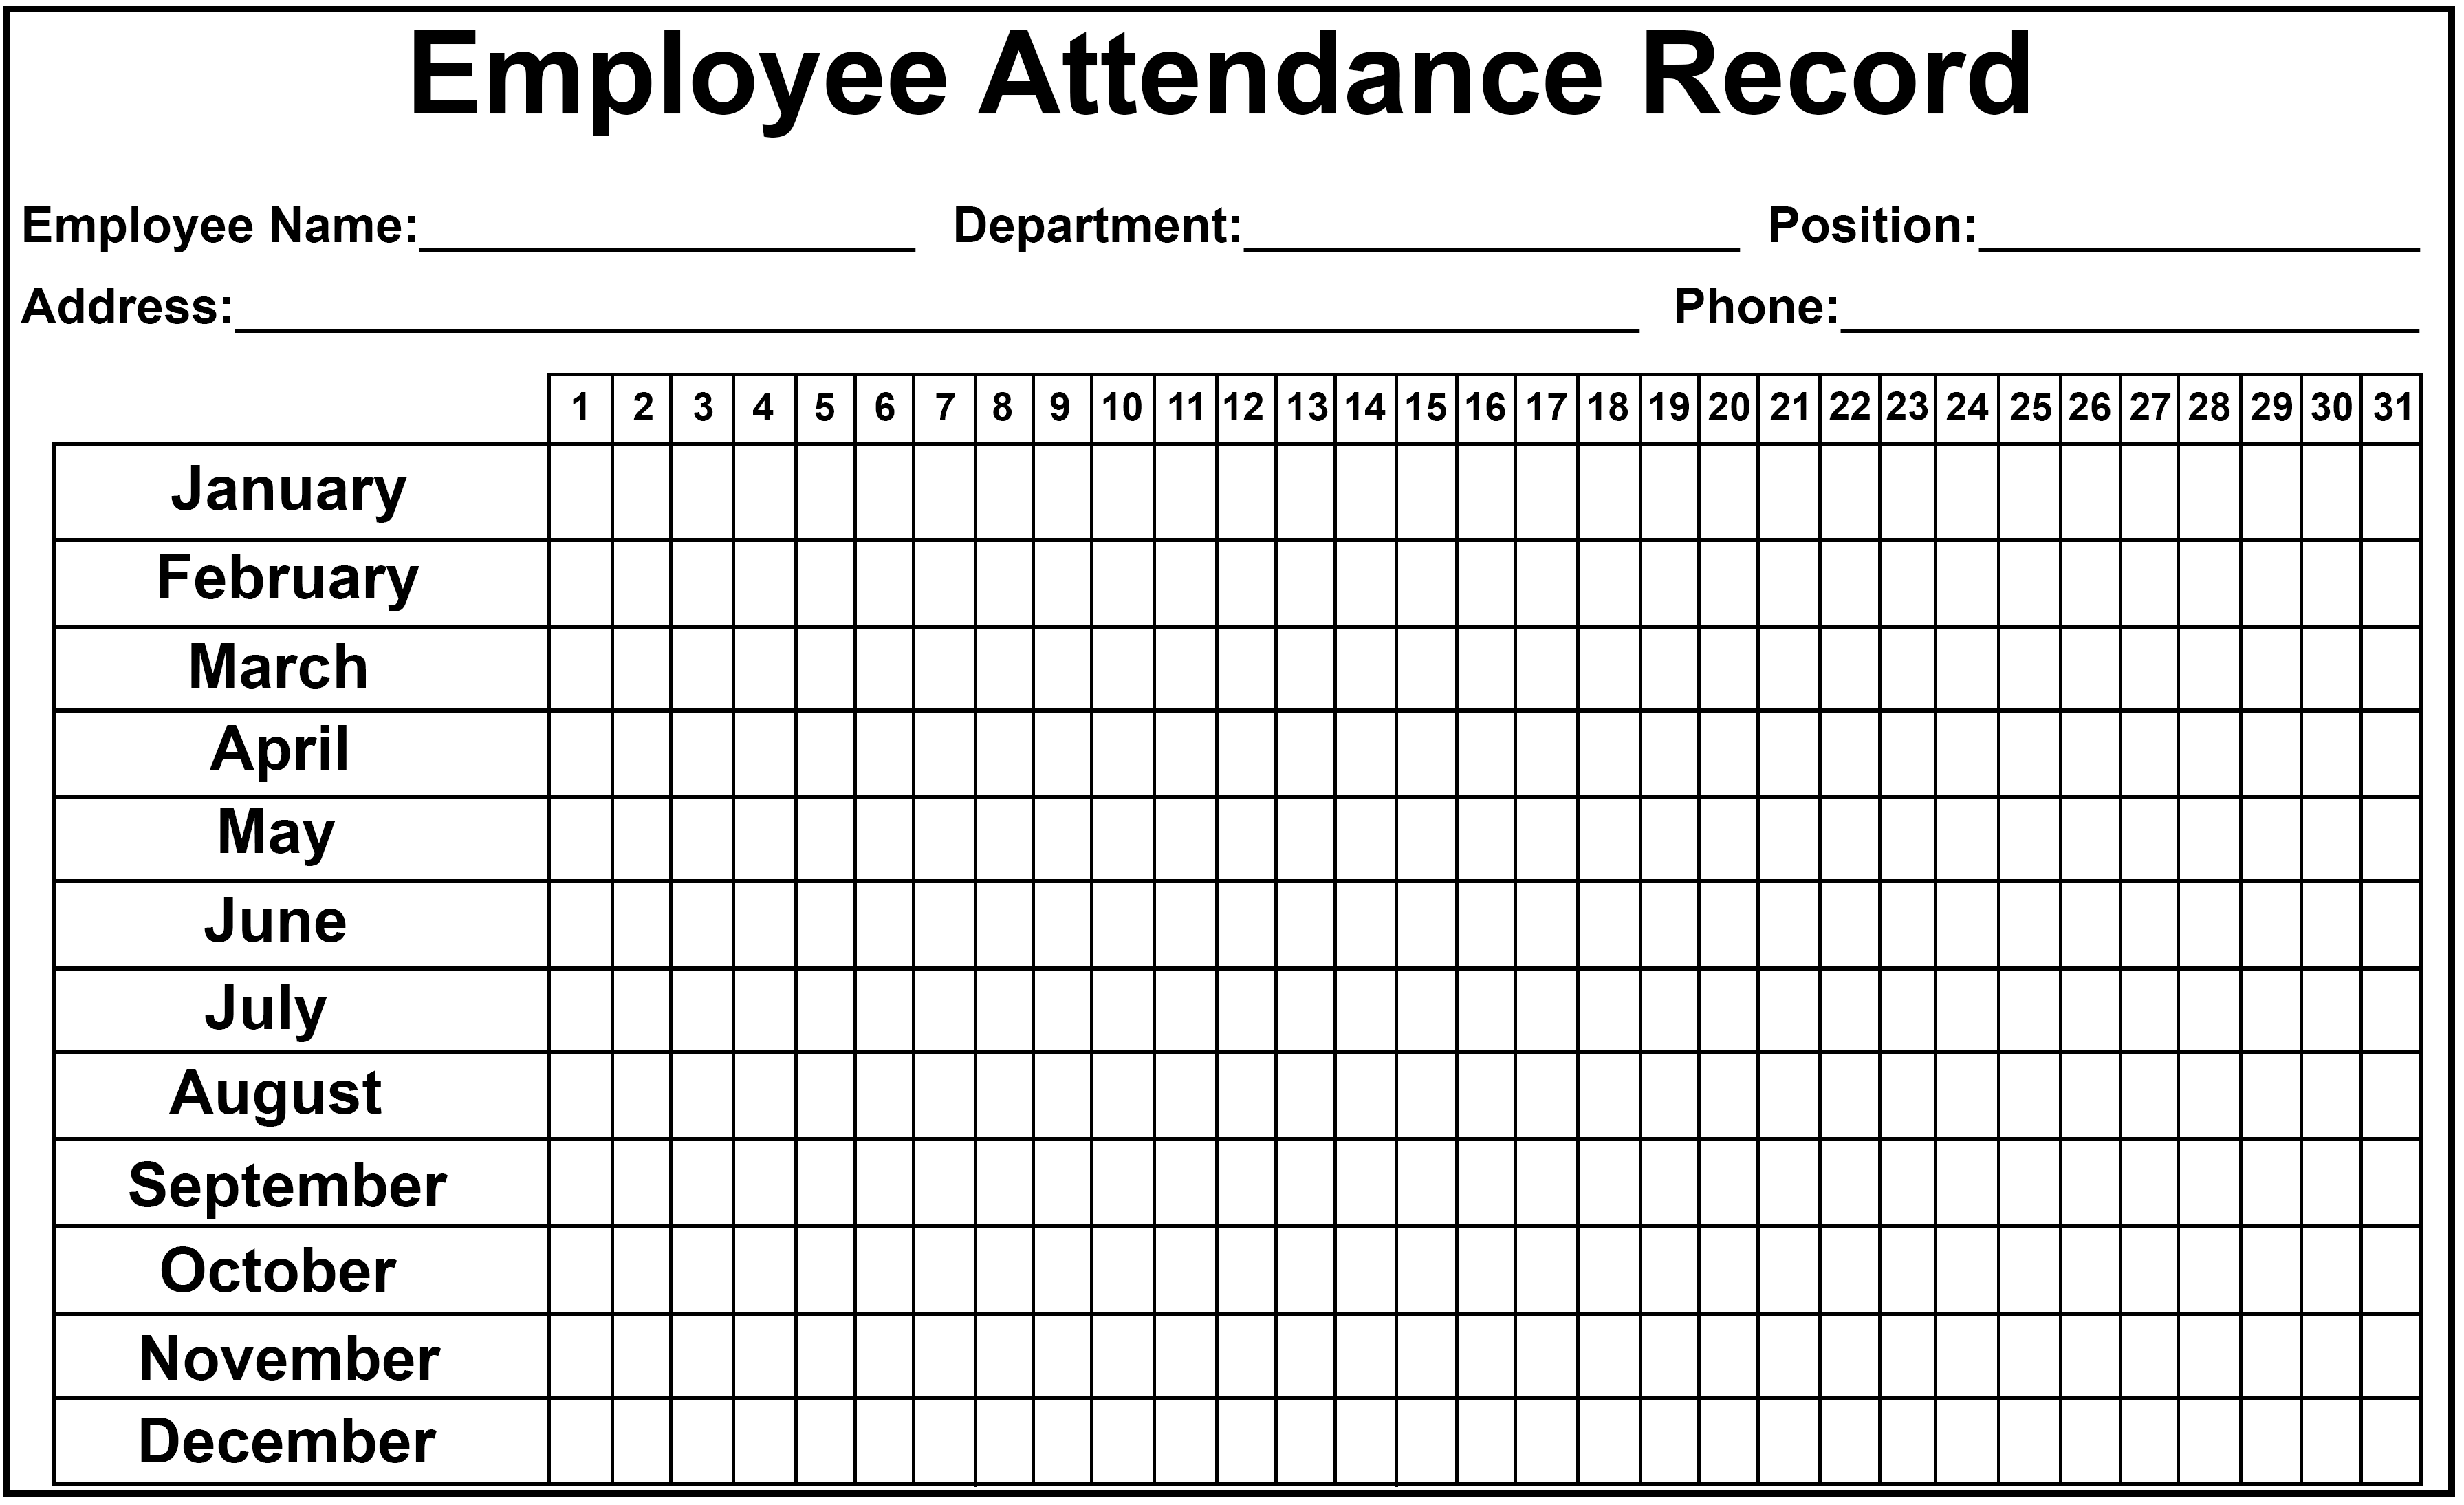 Employee Attendance Tracker Sheet With Images